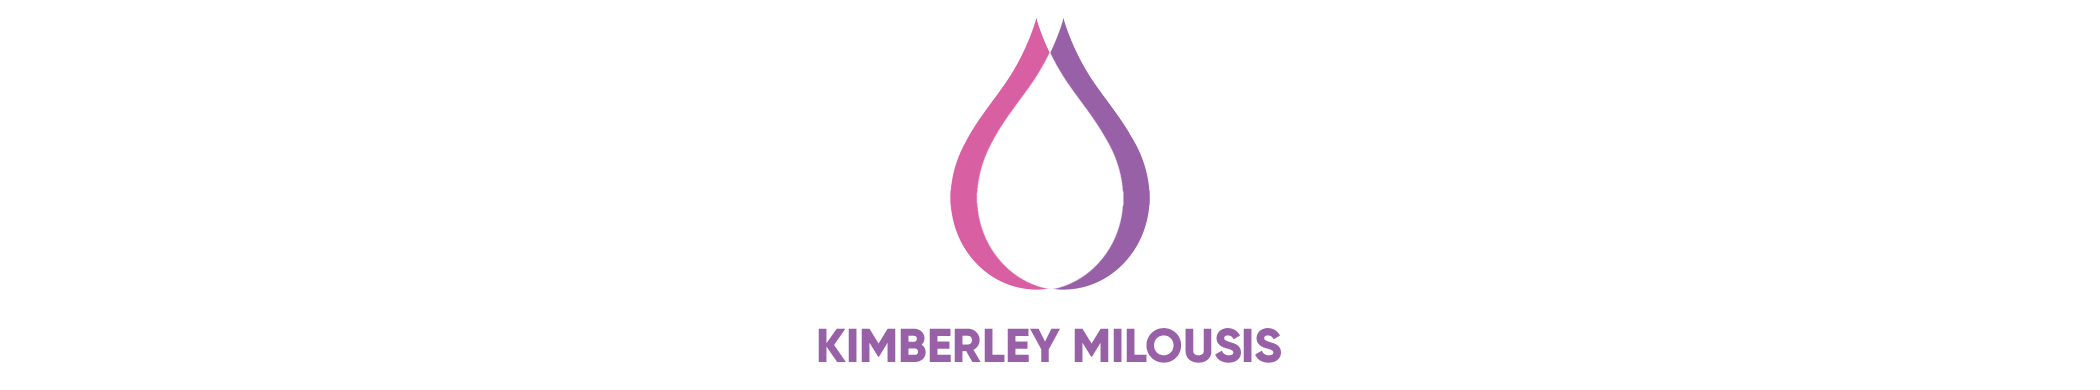 Kimberley Milousis Empowered Living Logo Essential Oil